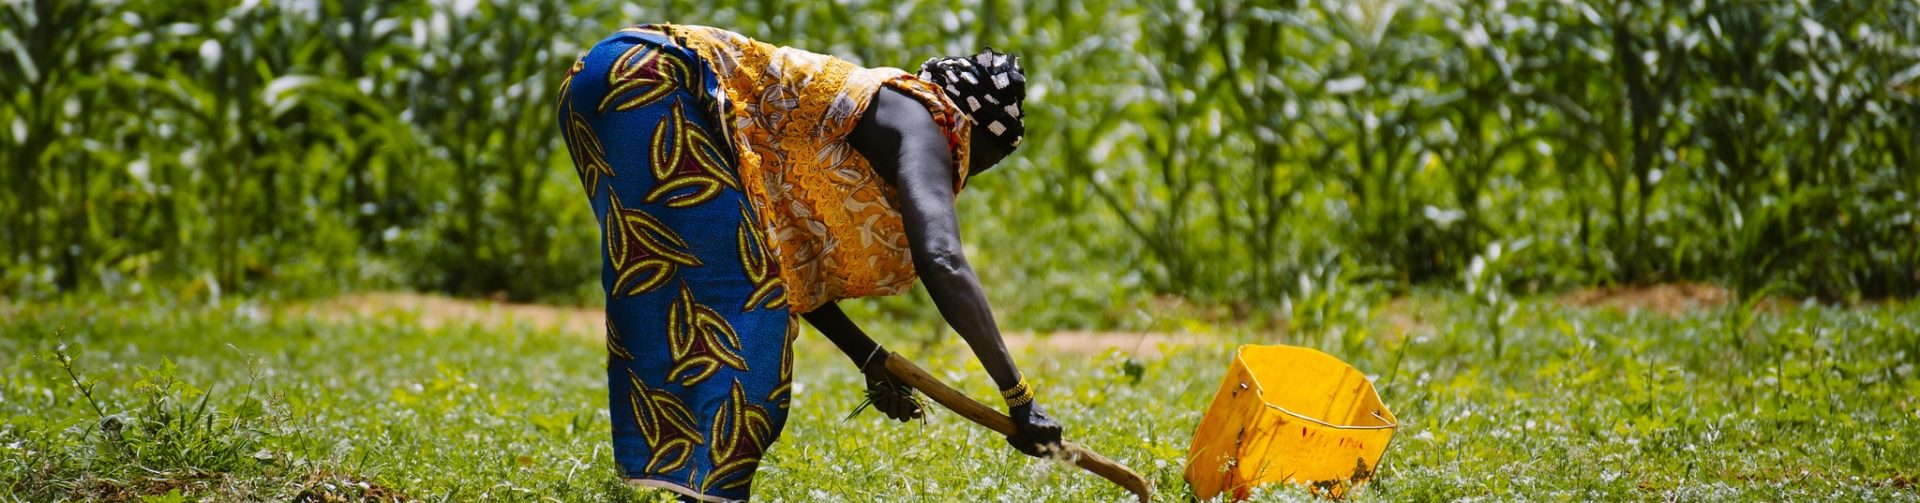 Considering gender in irrigation: Technology adoption for women farmers